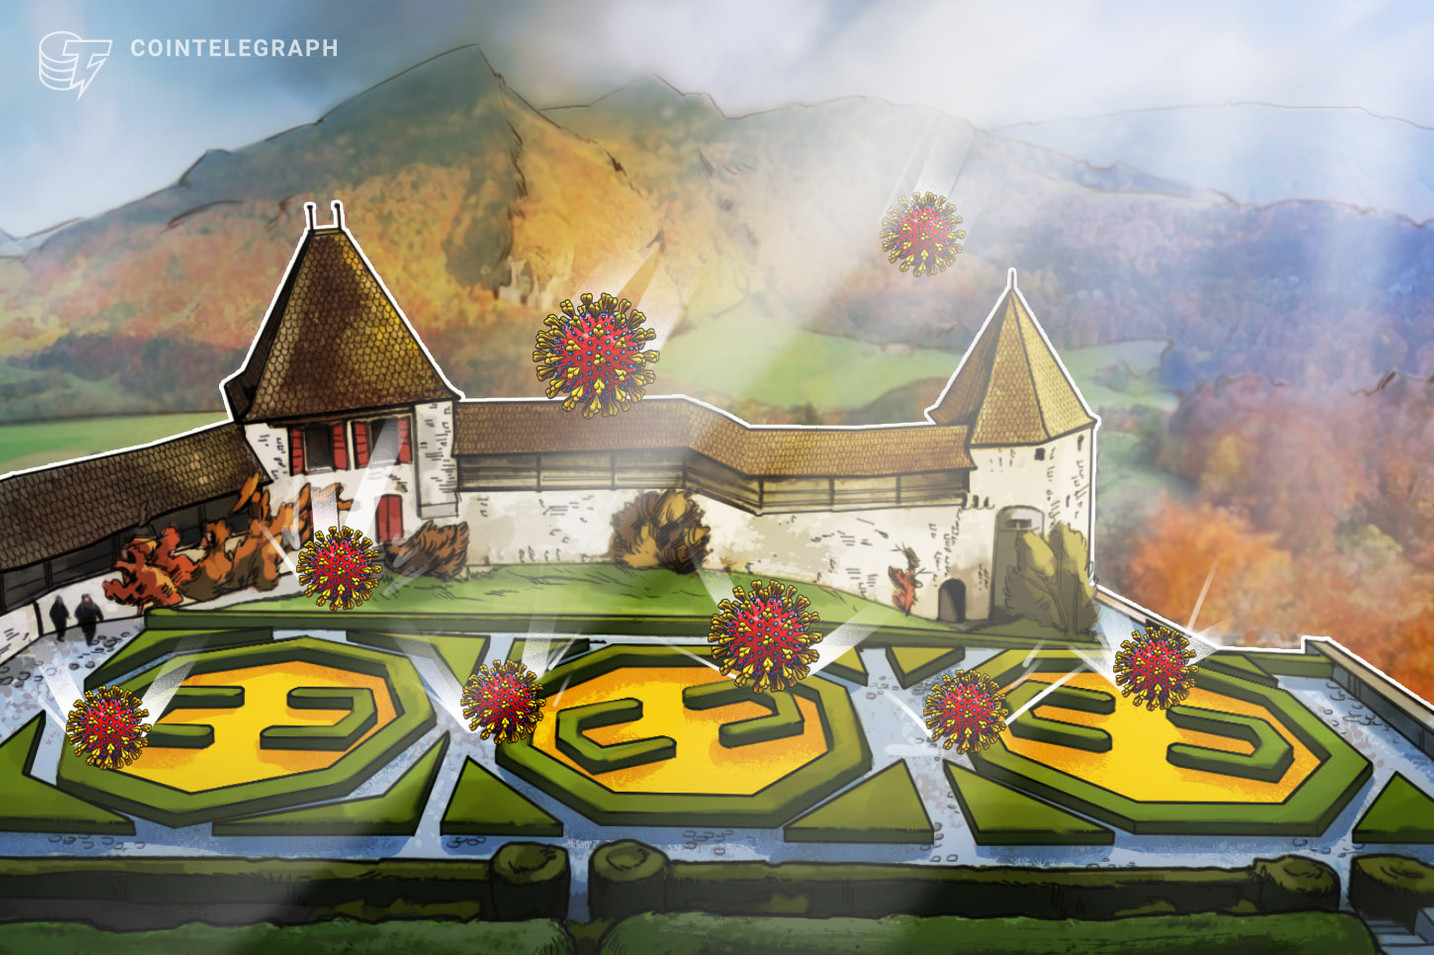 Switzerland Denies $103 Million of COVID-19 Relief for Crypto Valley